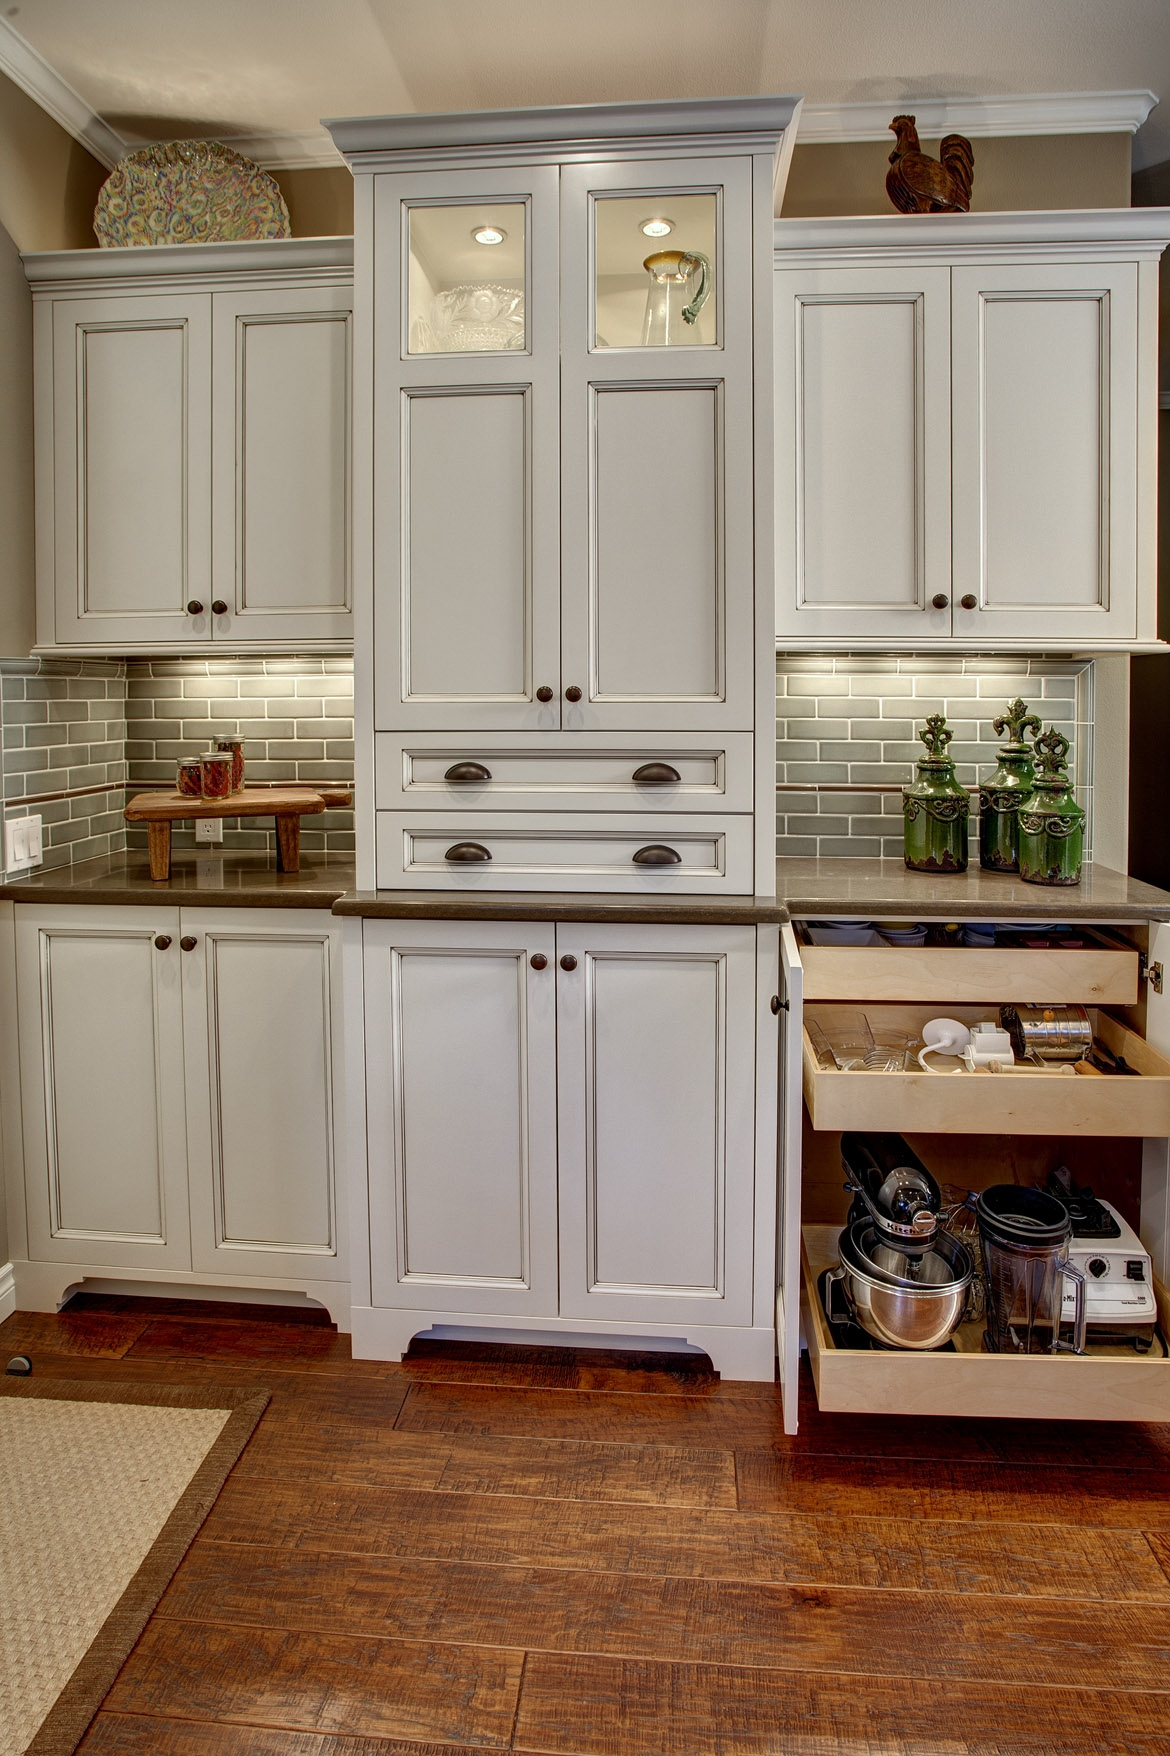 Add Storage To Top Of Kitchen Cabinets